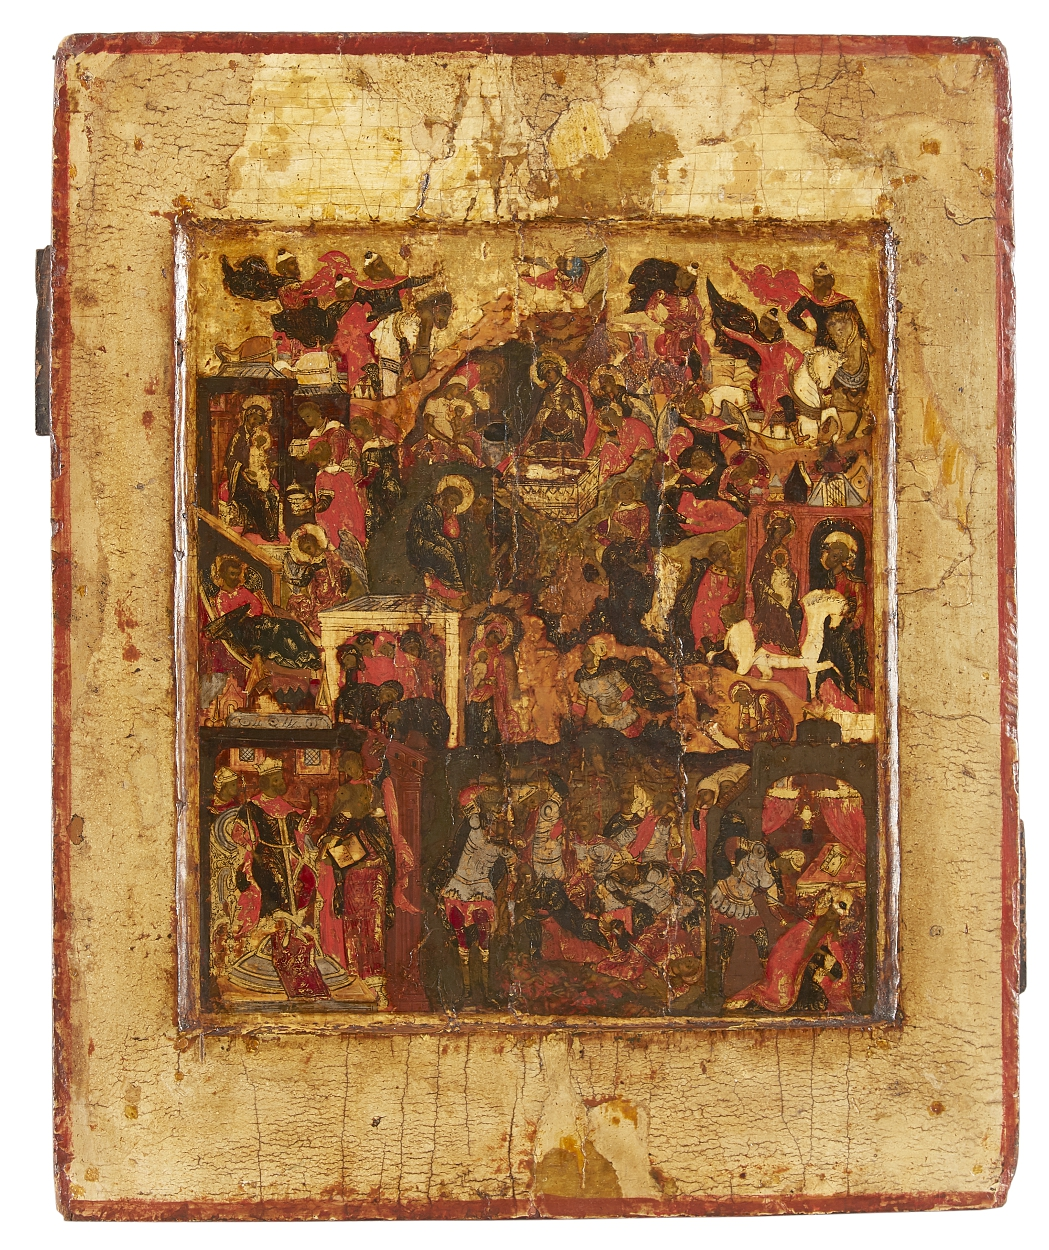 A Russian icon of The birth of the Christ